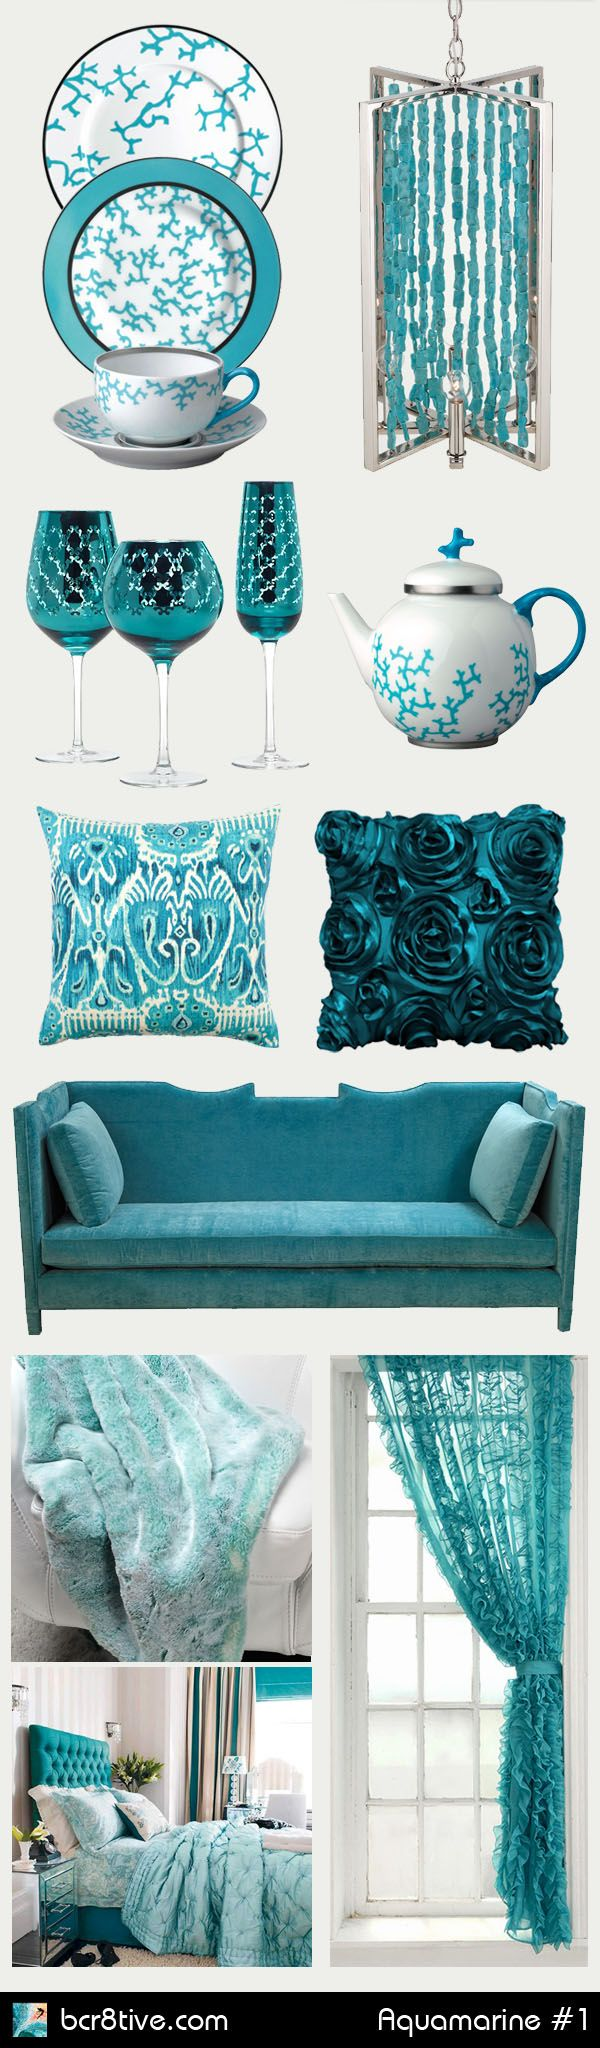 harmony turquoise in home with wall look com and villazbeats brick chandelier ideas white decor of beautiful